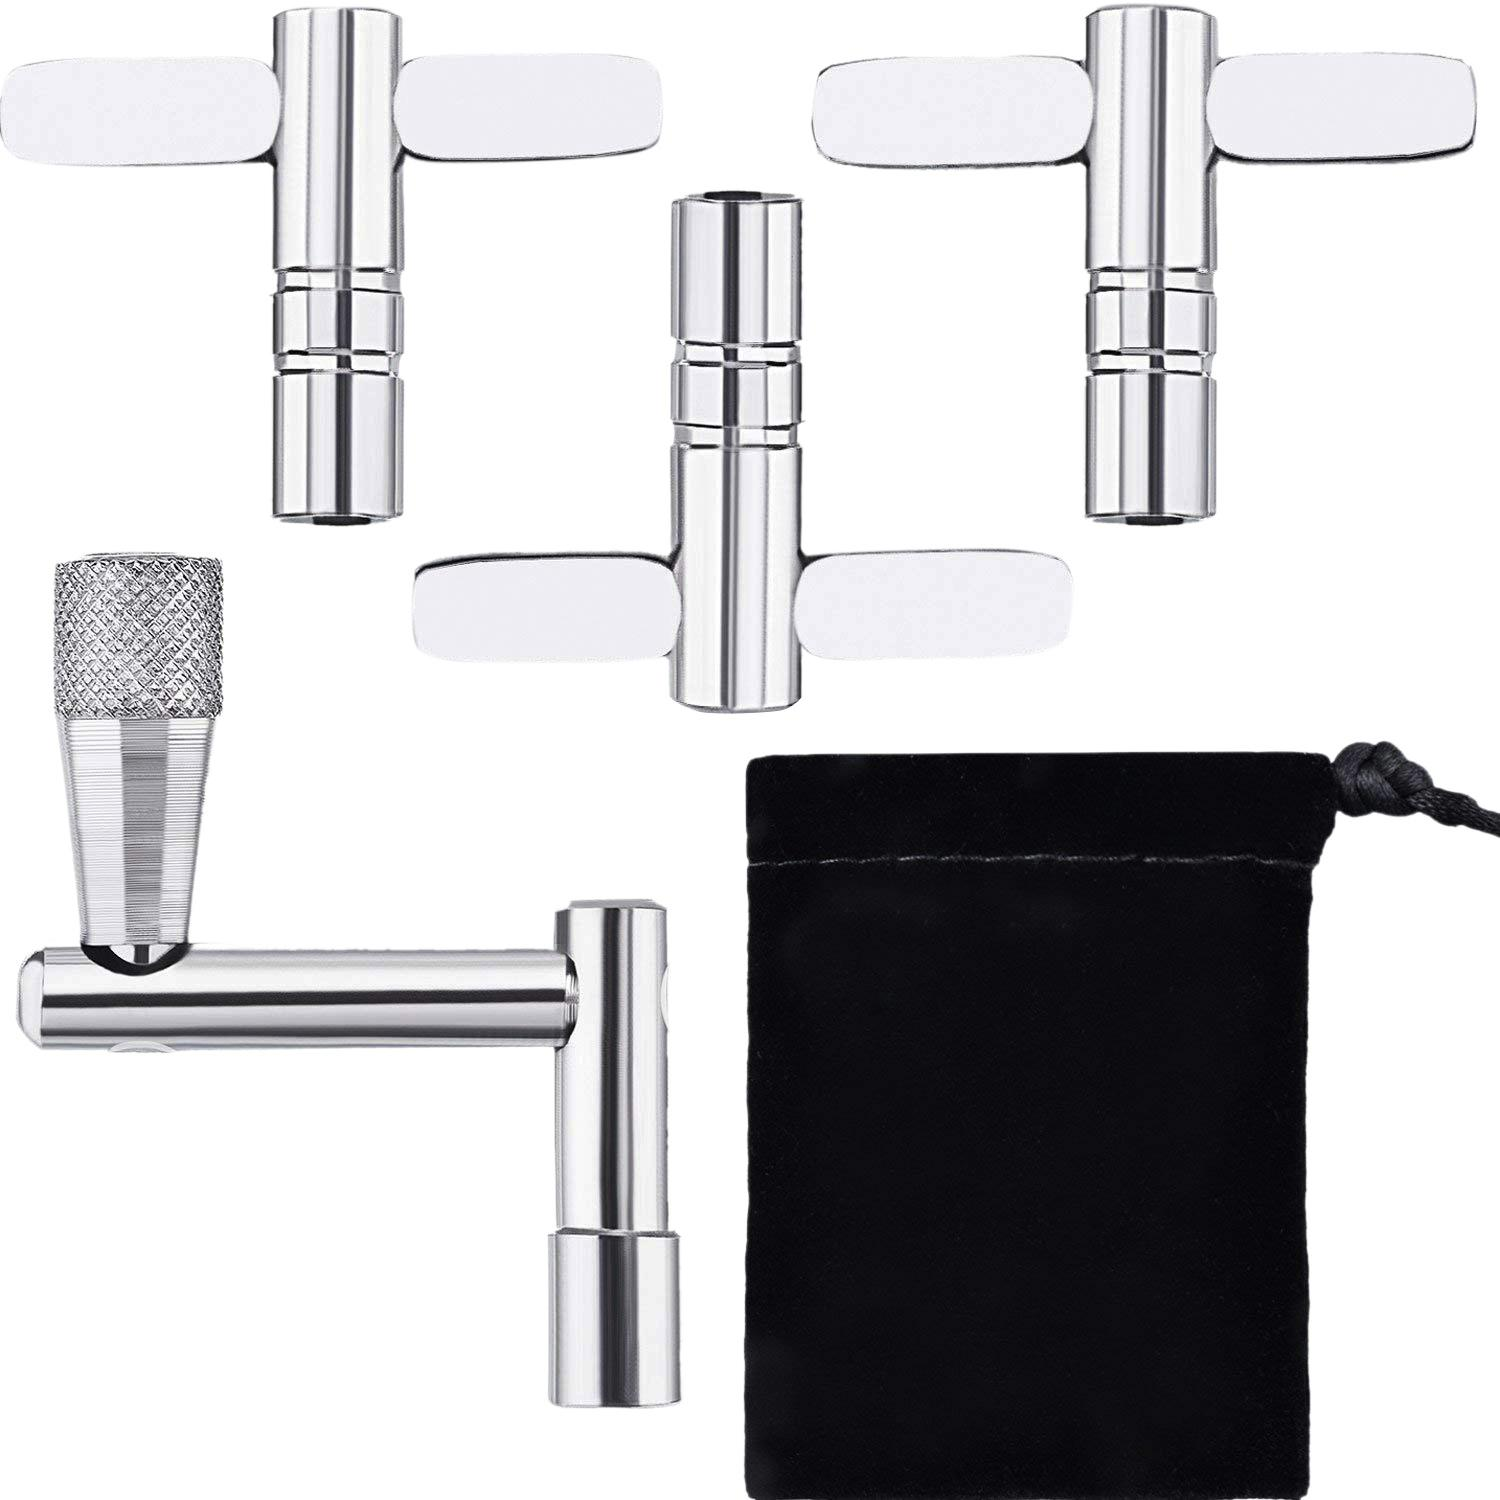 4 Pieces Drum Key Drum Tuning Key Tension Drum Key Percussion Hardware Tool By Starnet Store.